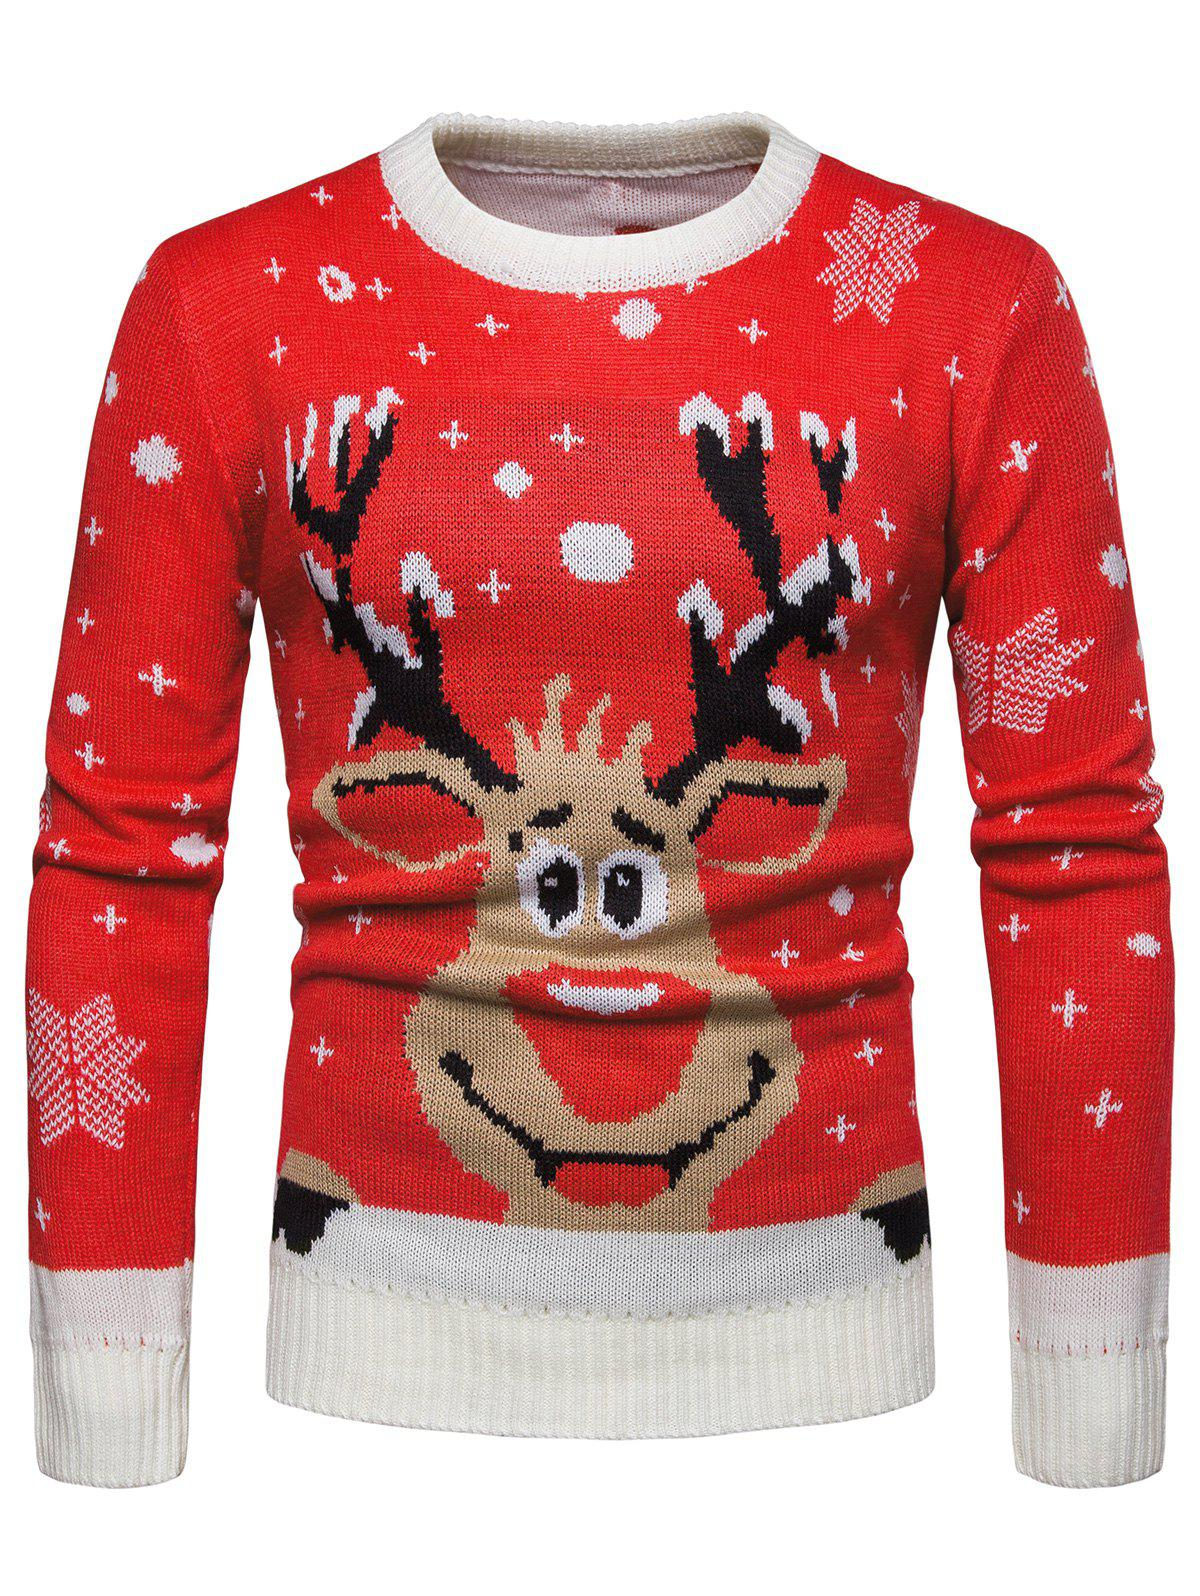 Unique Christmas Reindeer Print Pullover Sweater